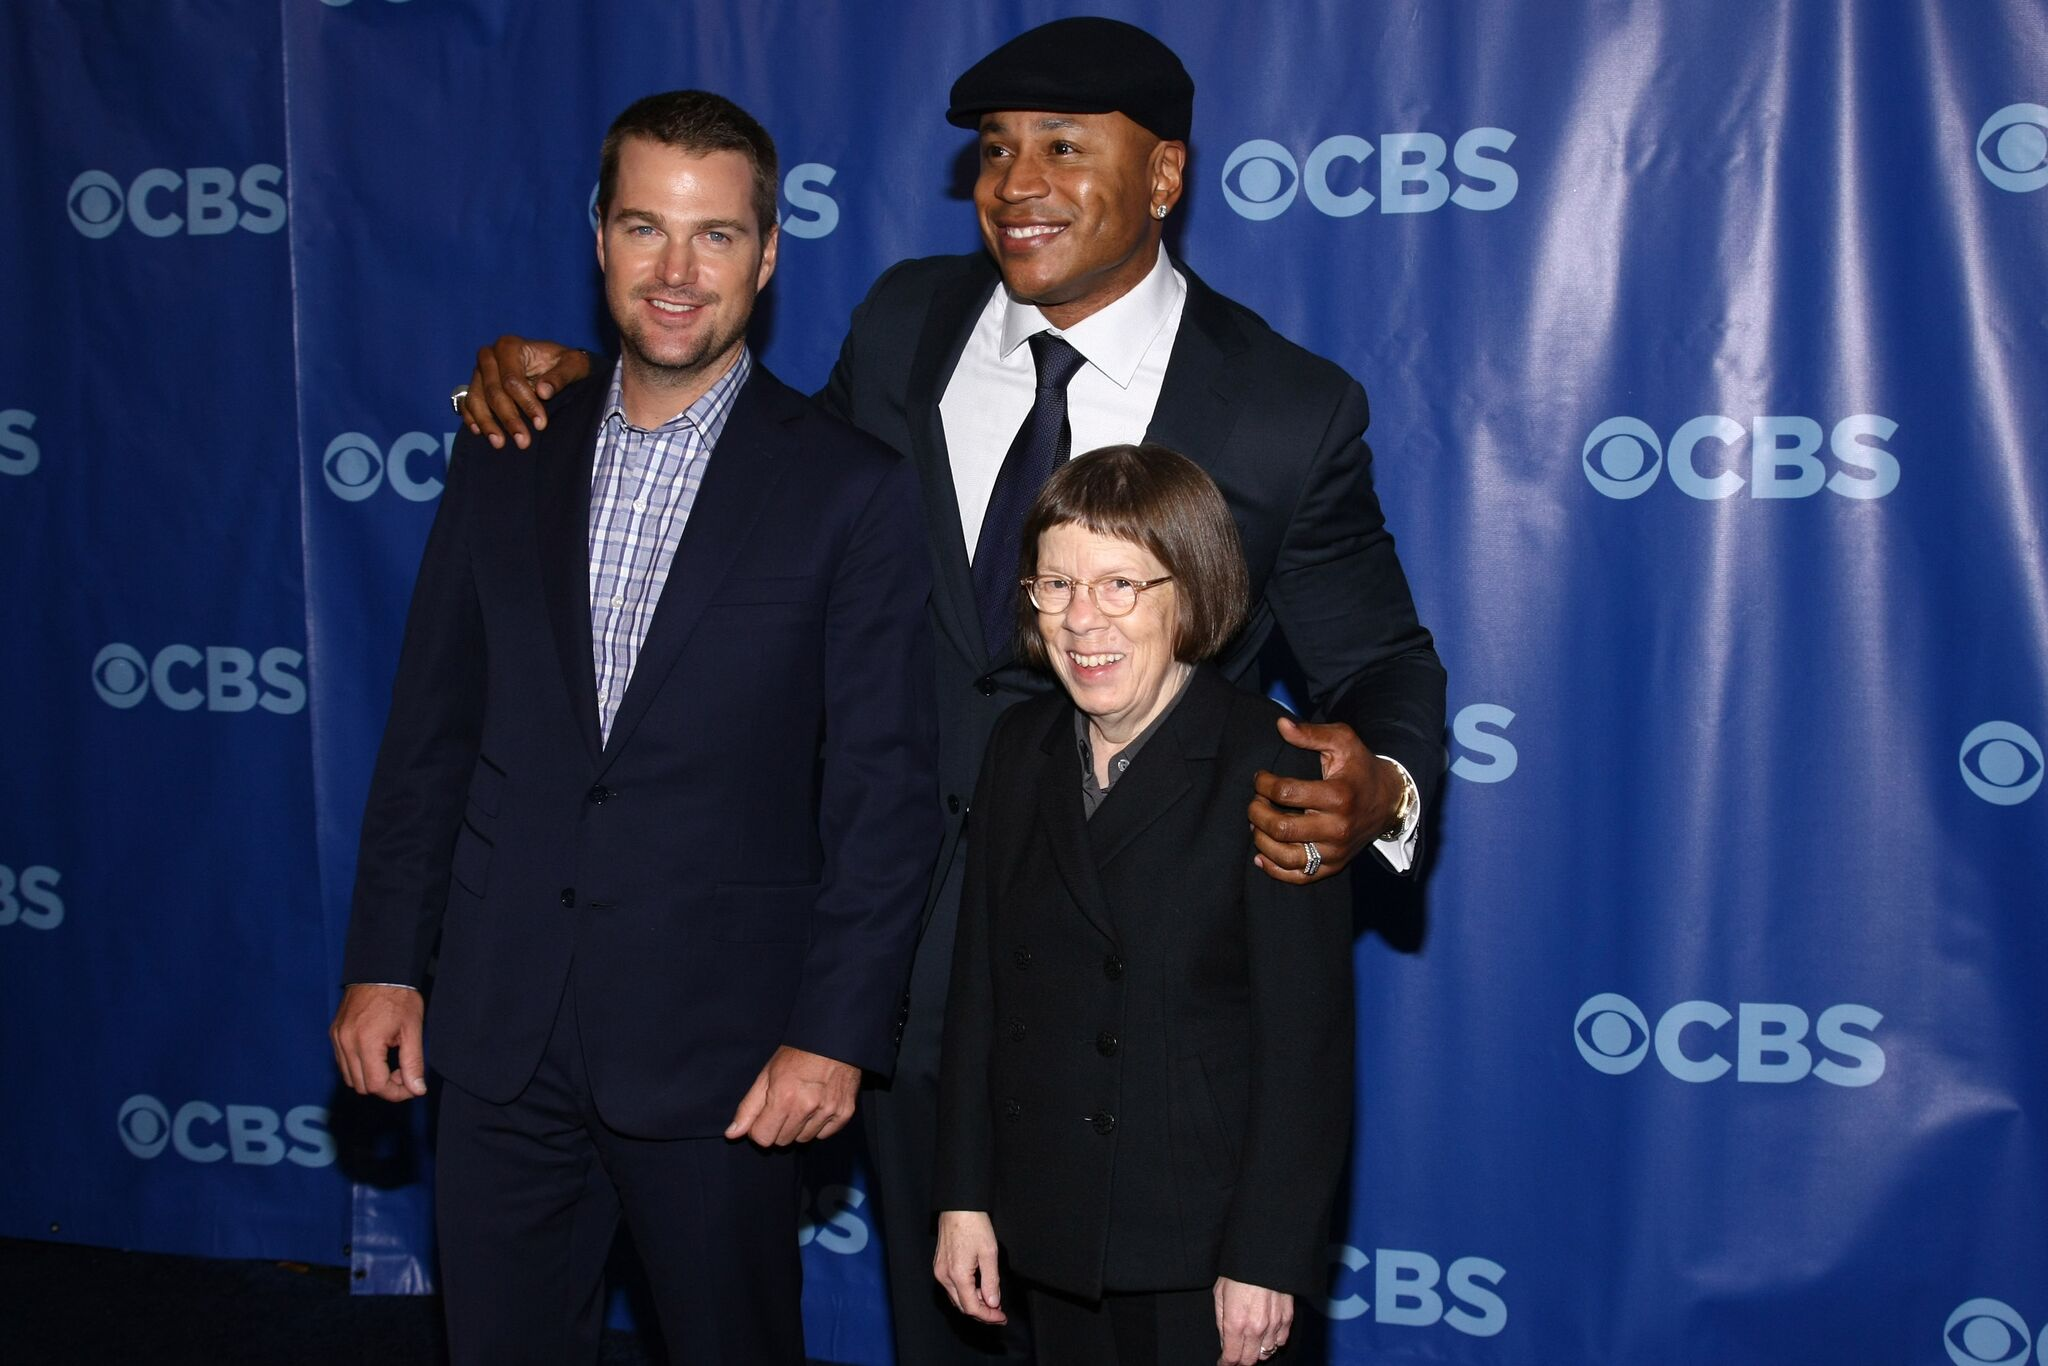 Chris O'Donnell, LL Cool J and Linda Hunt at the 2011 CBS Upfront on May 18, 2011  | Photo: GettyImages